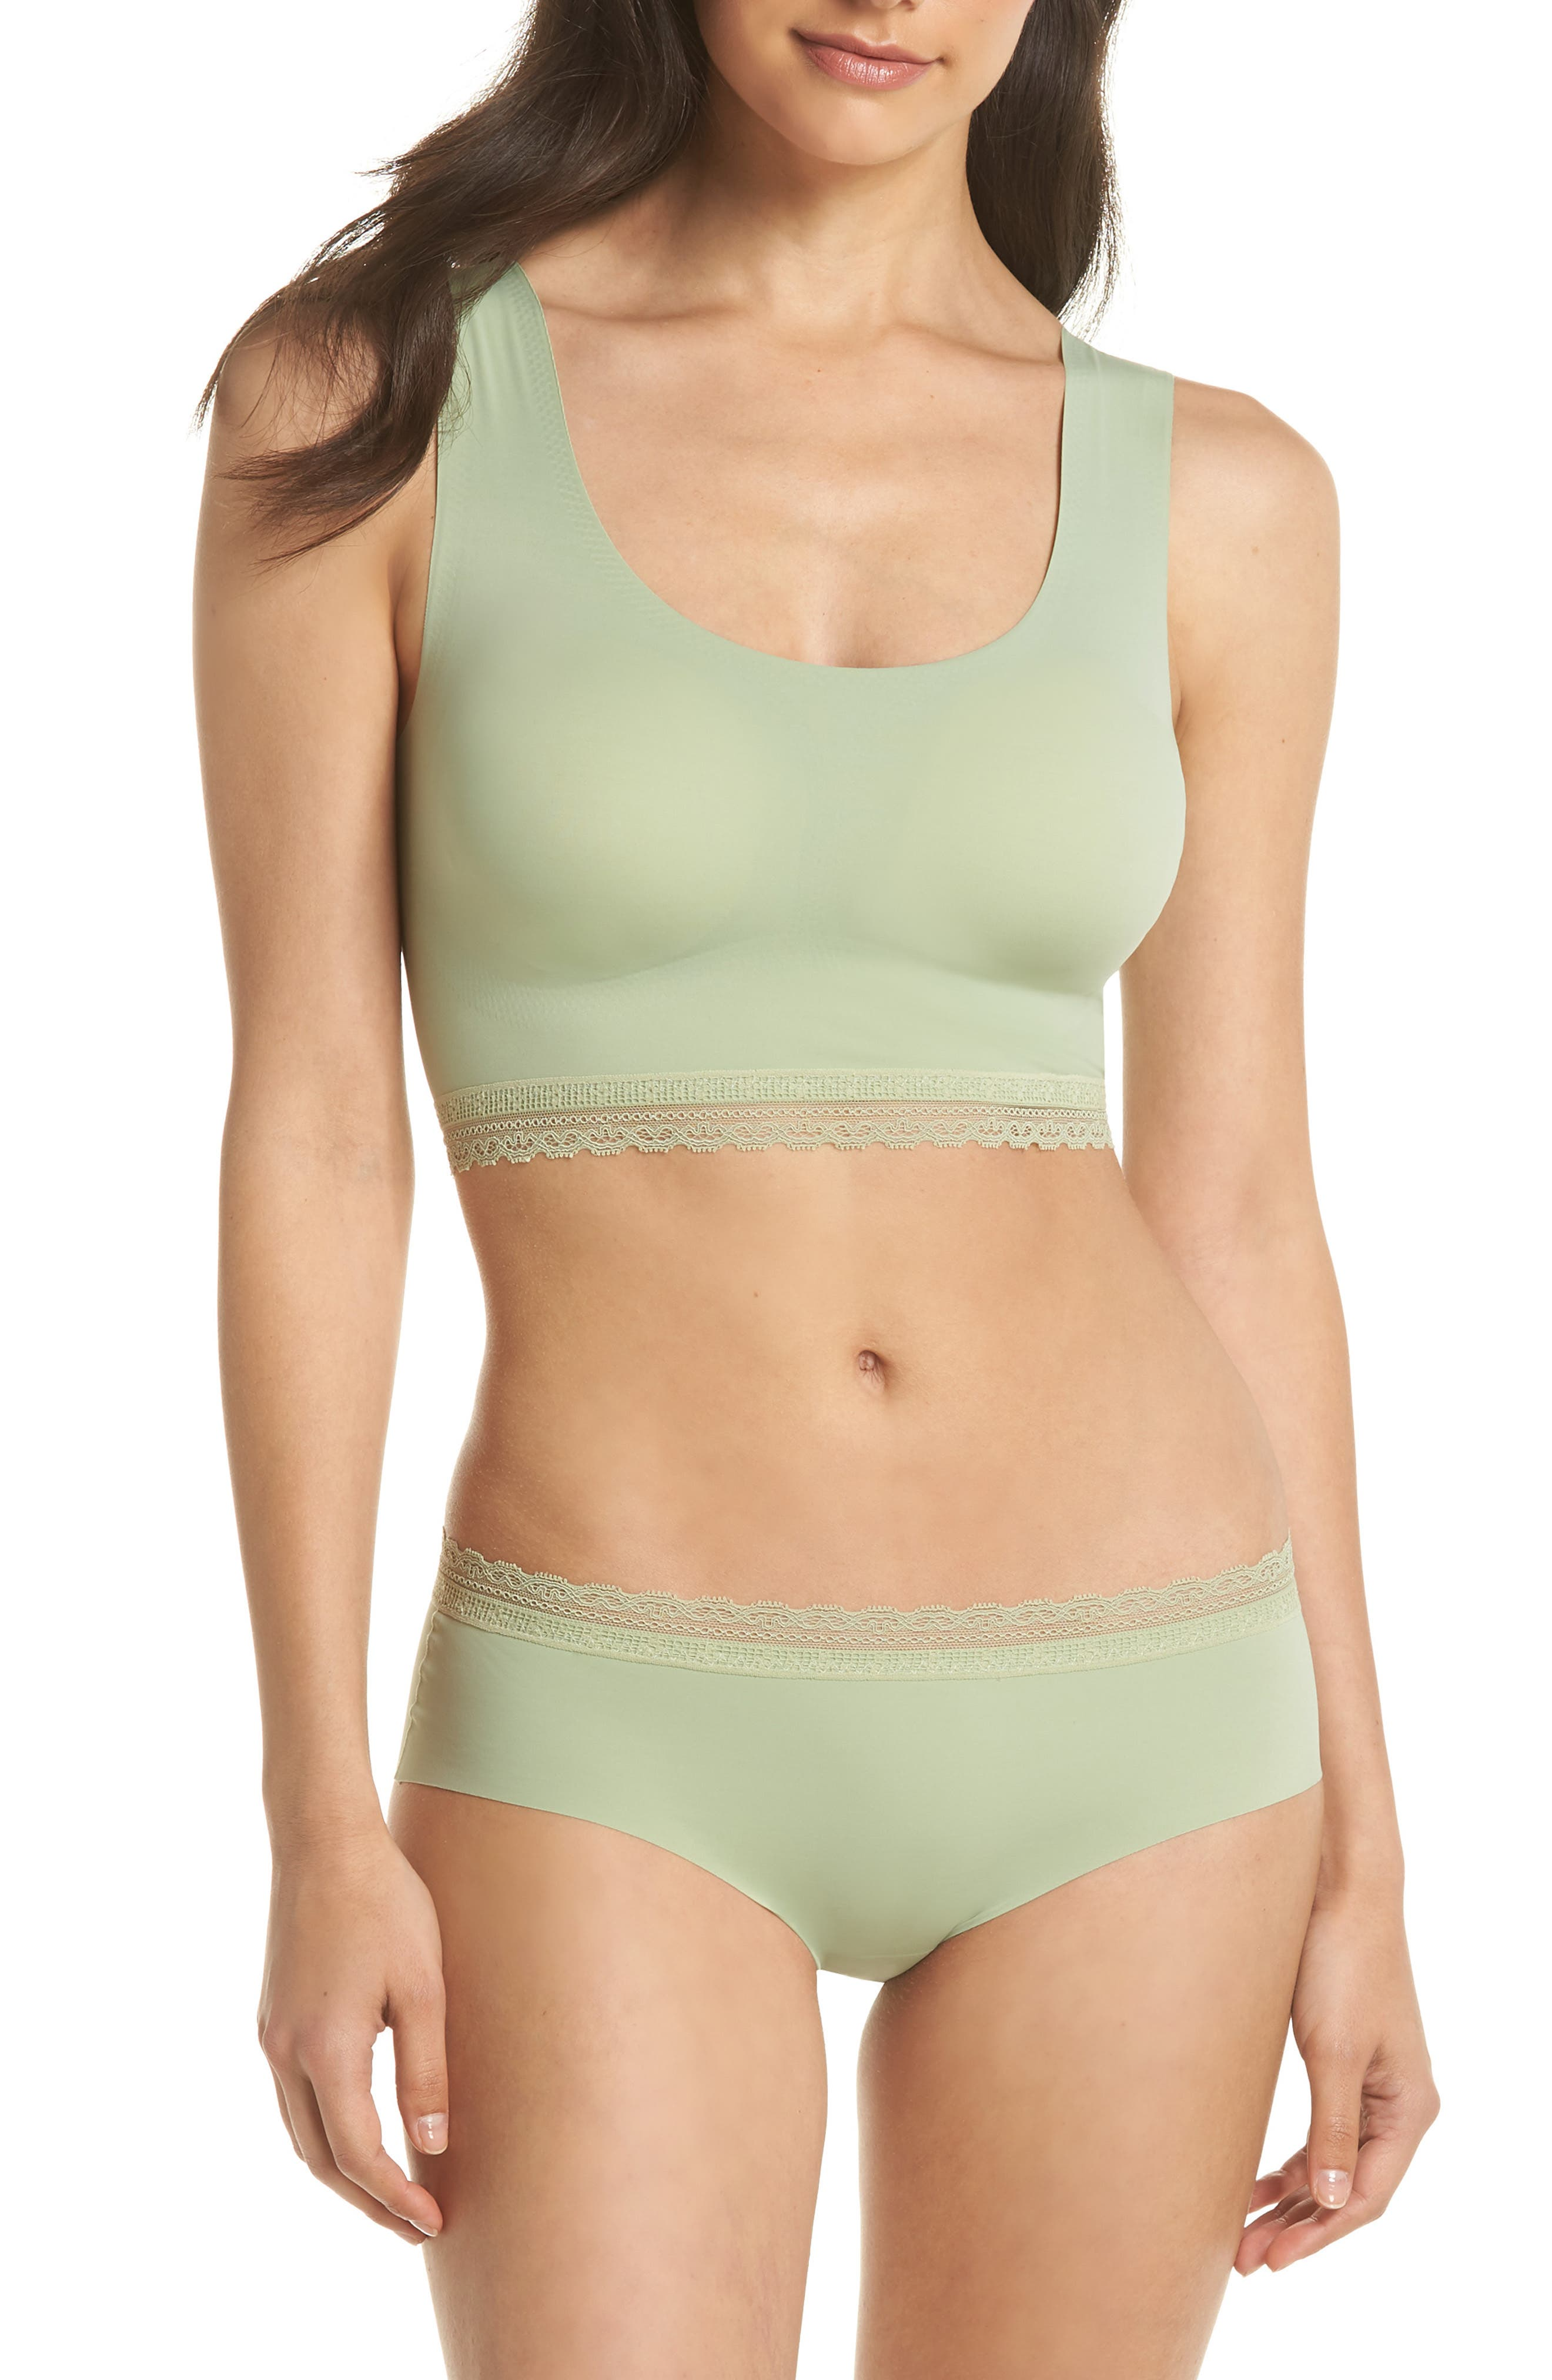 Almost Naked Lace Trim Bra,                             Alternate thumbnail 4, color,                             Green Tea